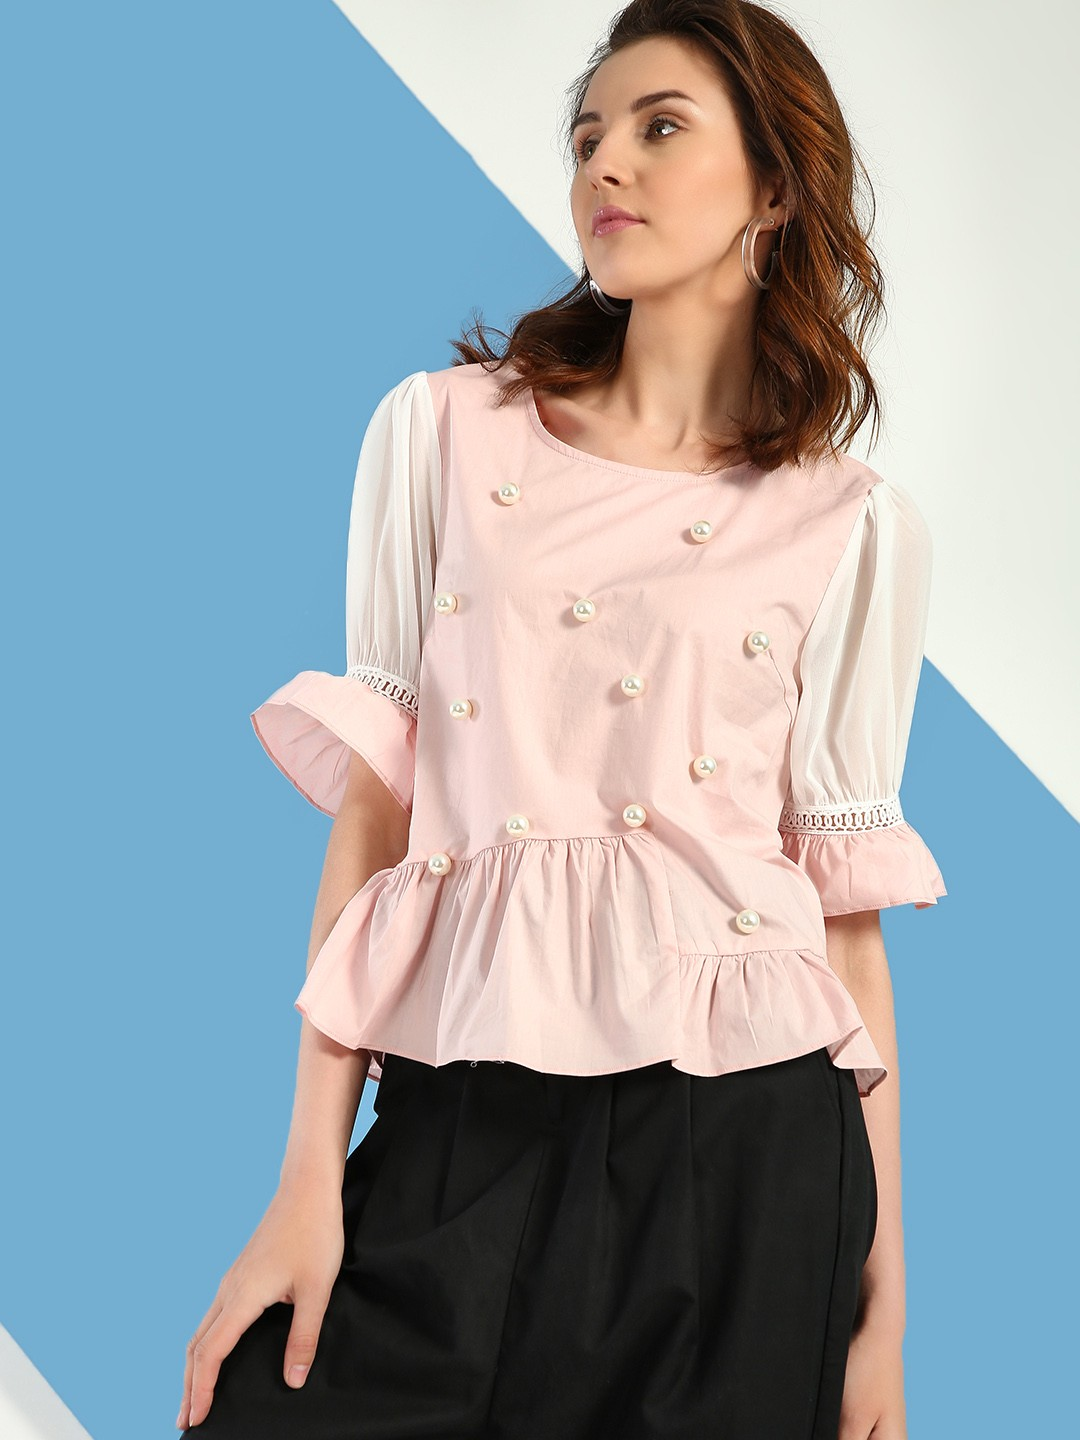 JJ's Fairyland Pink/White Pearl Embellished Peplum Top 1